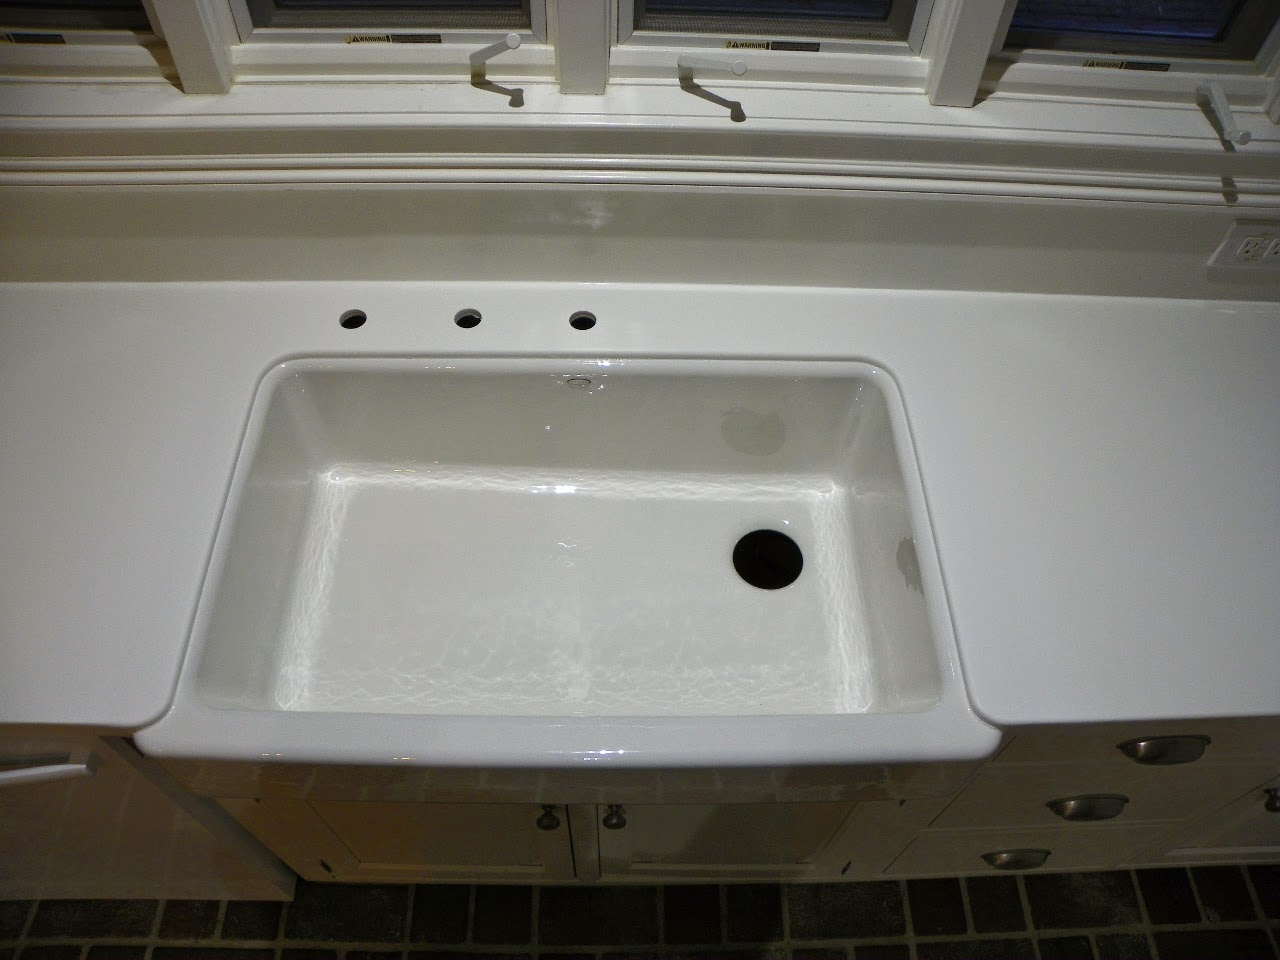 Ideal The Solid Surface and Stone Countertop Repair Blog Retro Fit Undermount Farm Sink Installation in Pinehurst NC